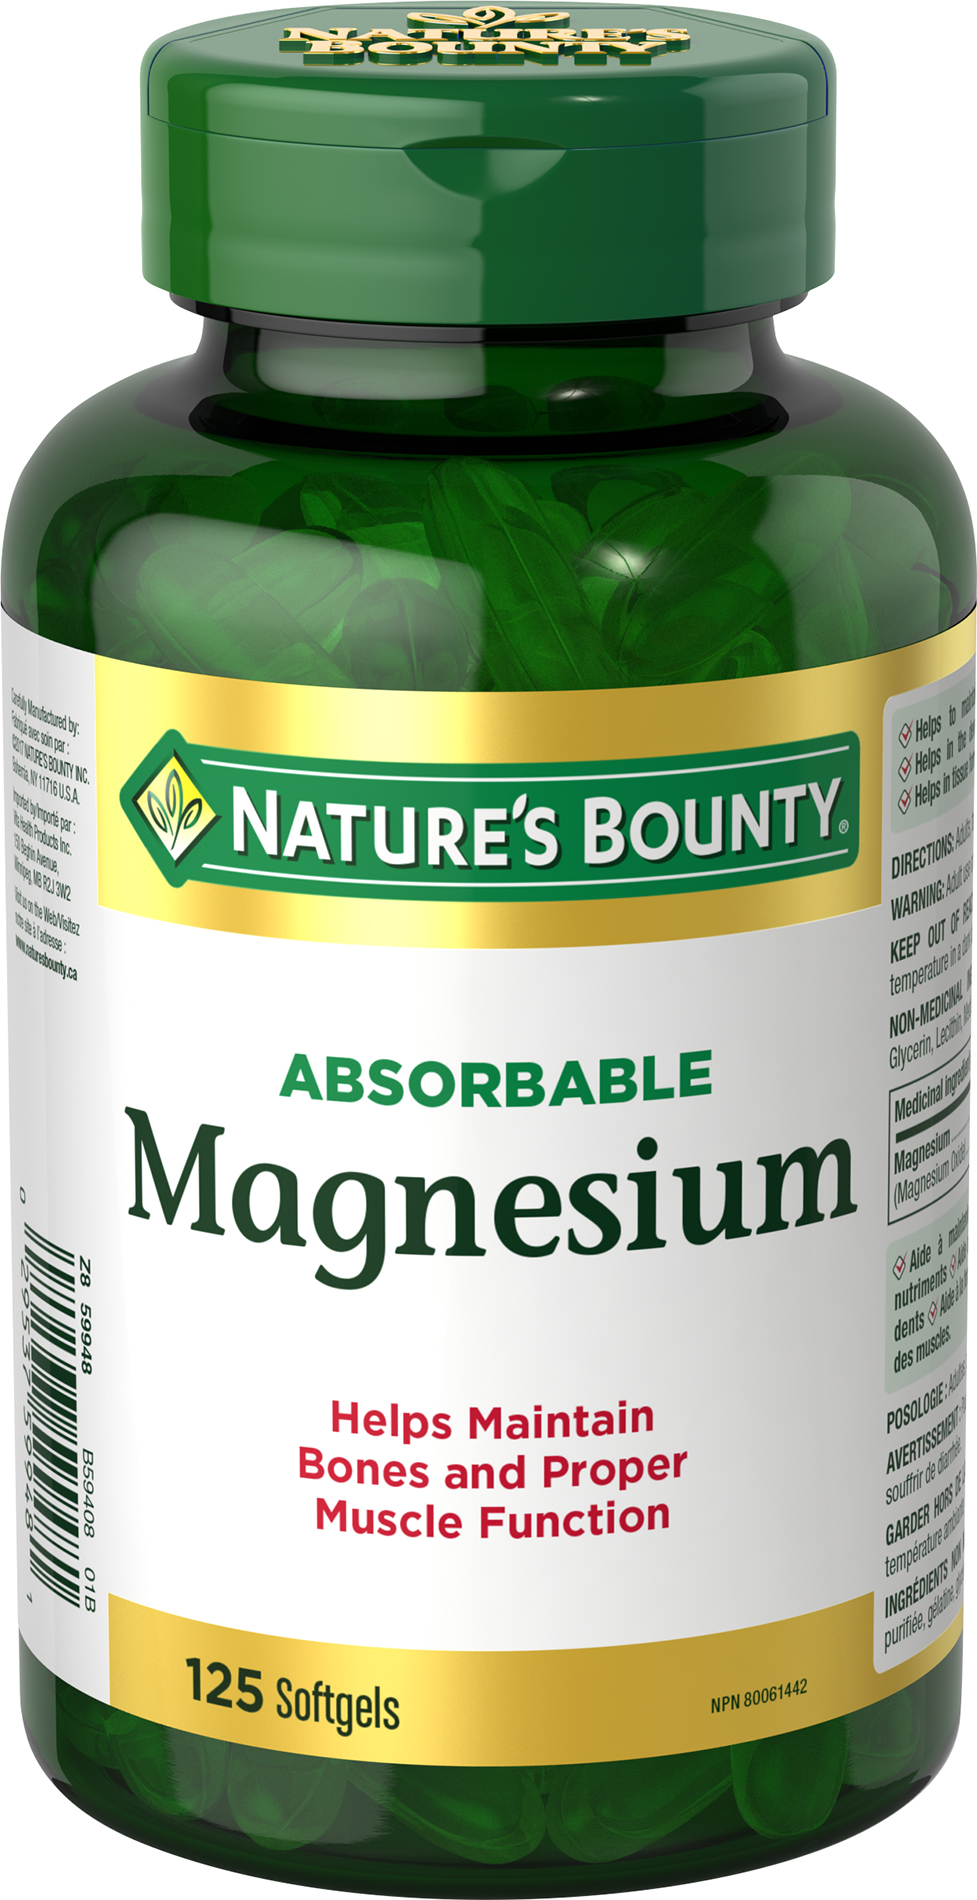 Absorbable Magnesium